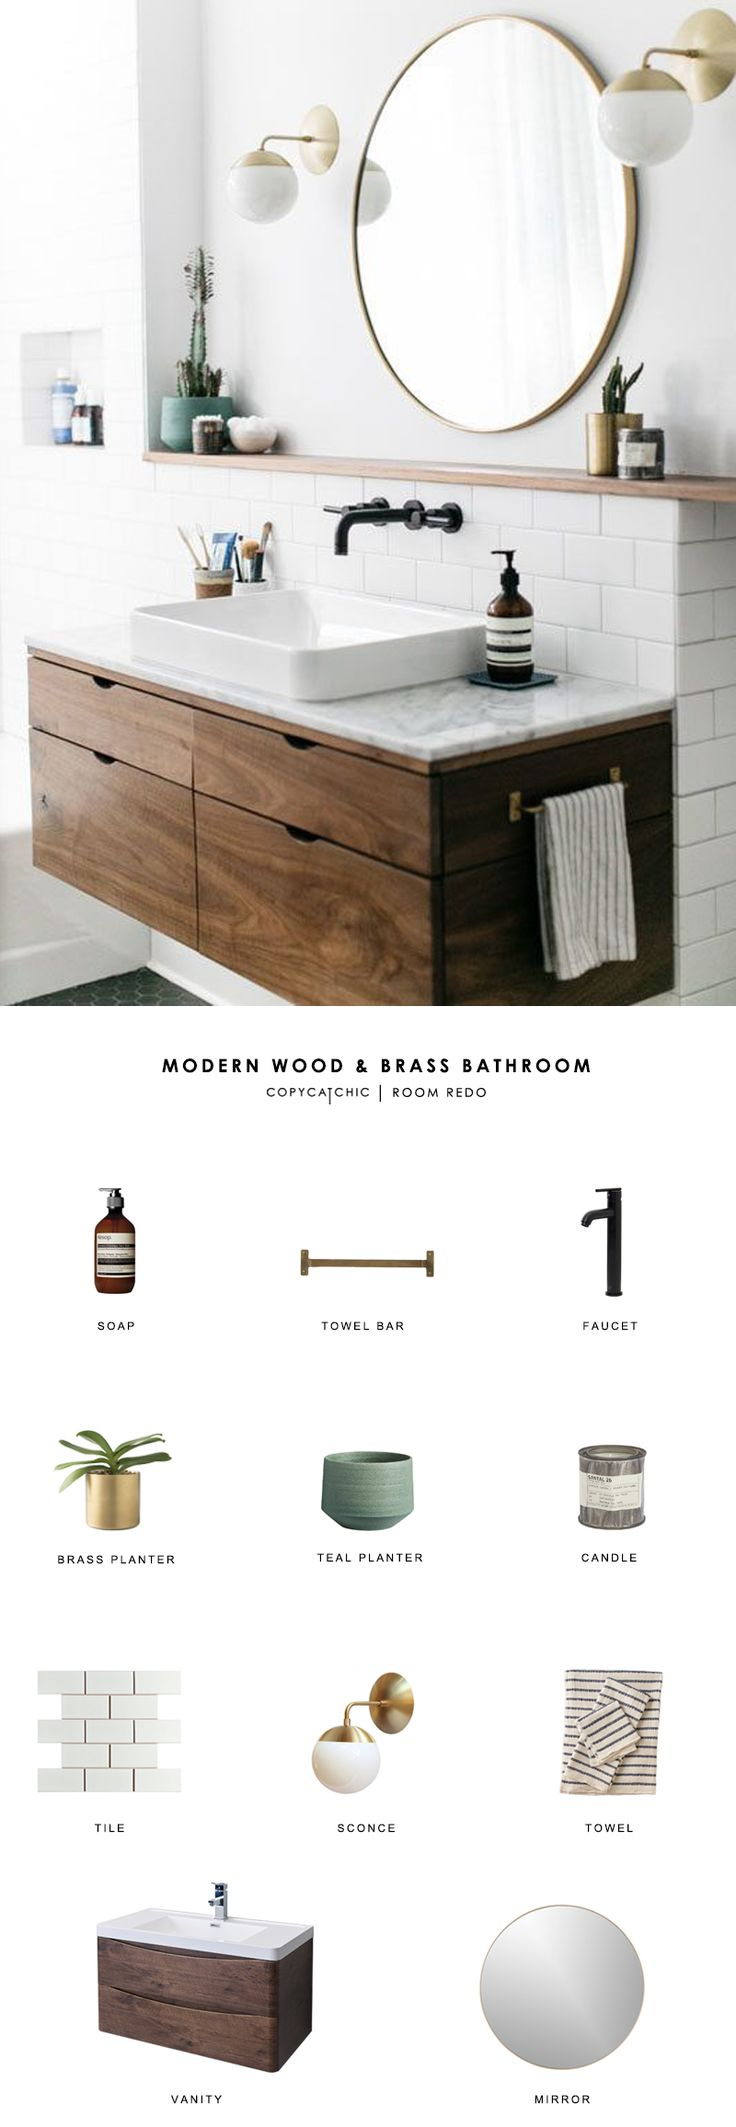 Industrial bathroom fixtures - Copy Cat Chic Room Redo Industrial Bathroombrass